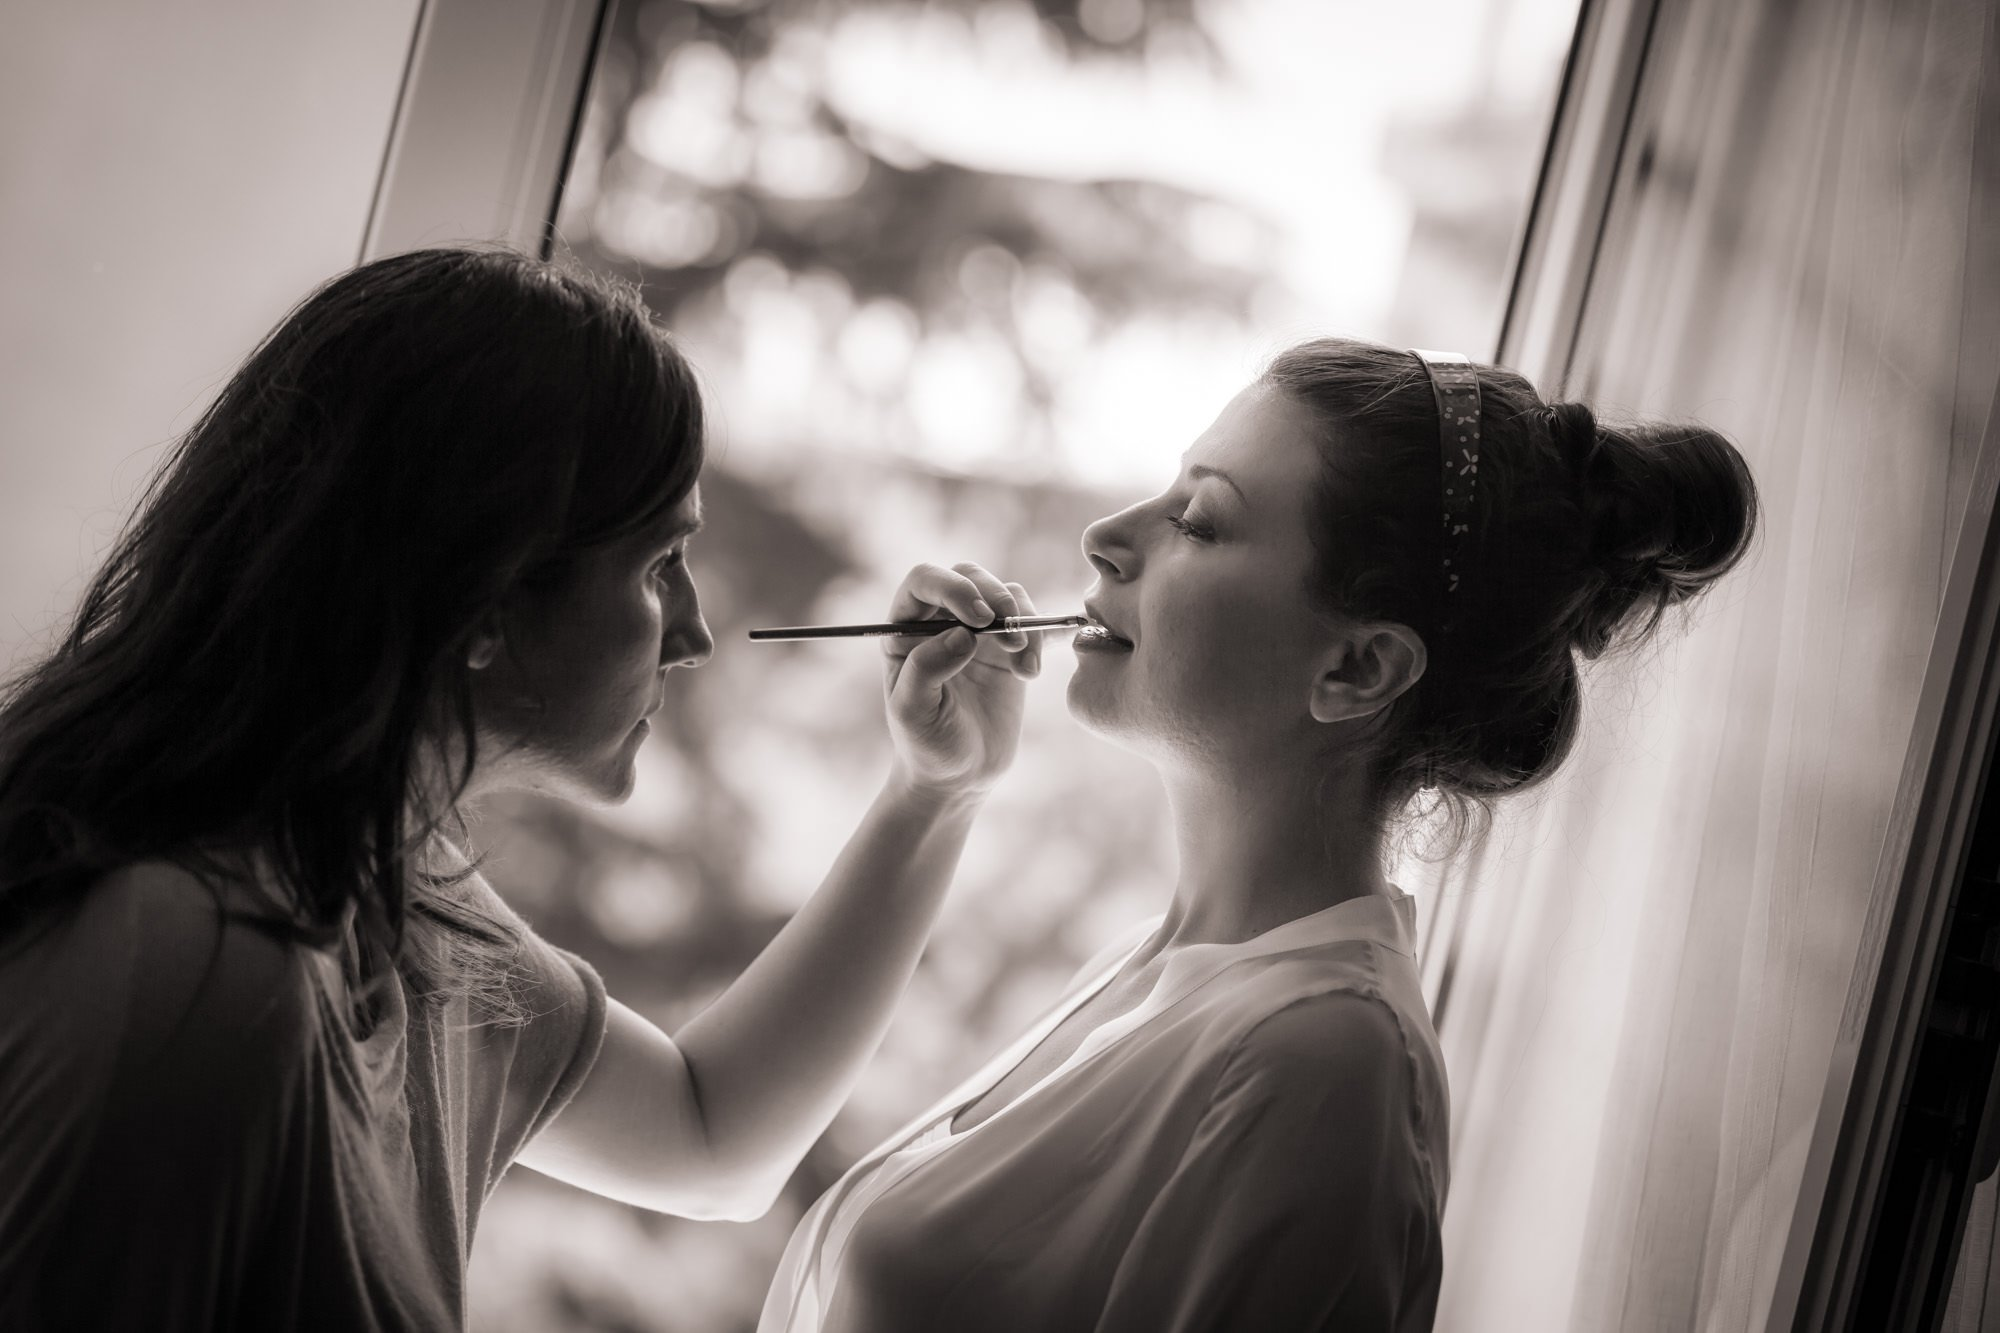 fotografo-matrimonio-roma-dettagli-preparativi-sposa-rome-destination-wedding-photographer-studio-infocus-weddings-2